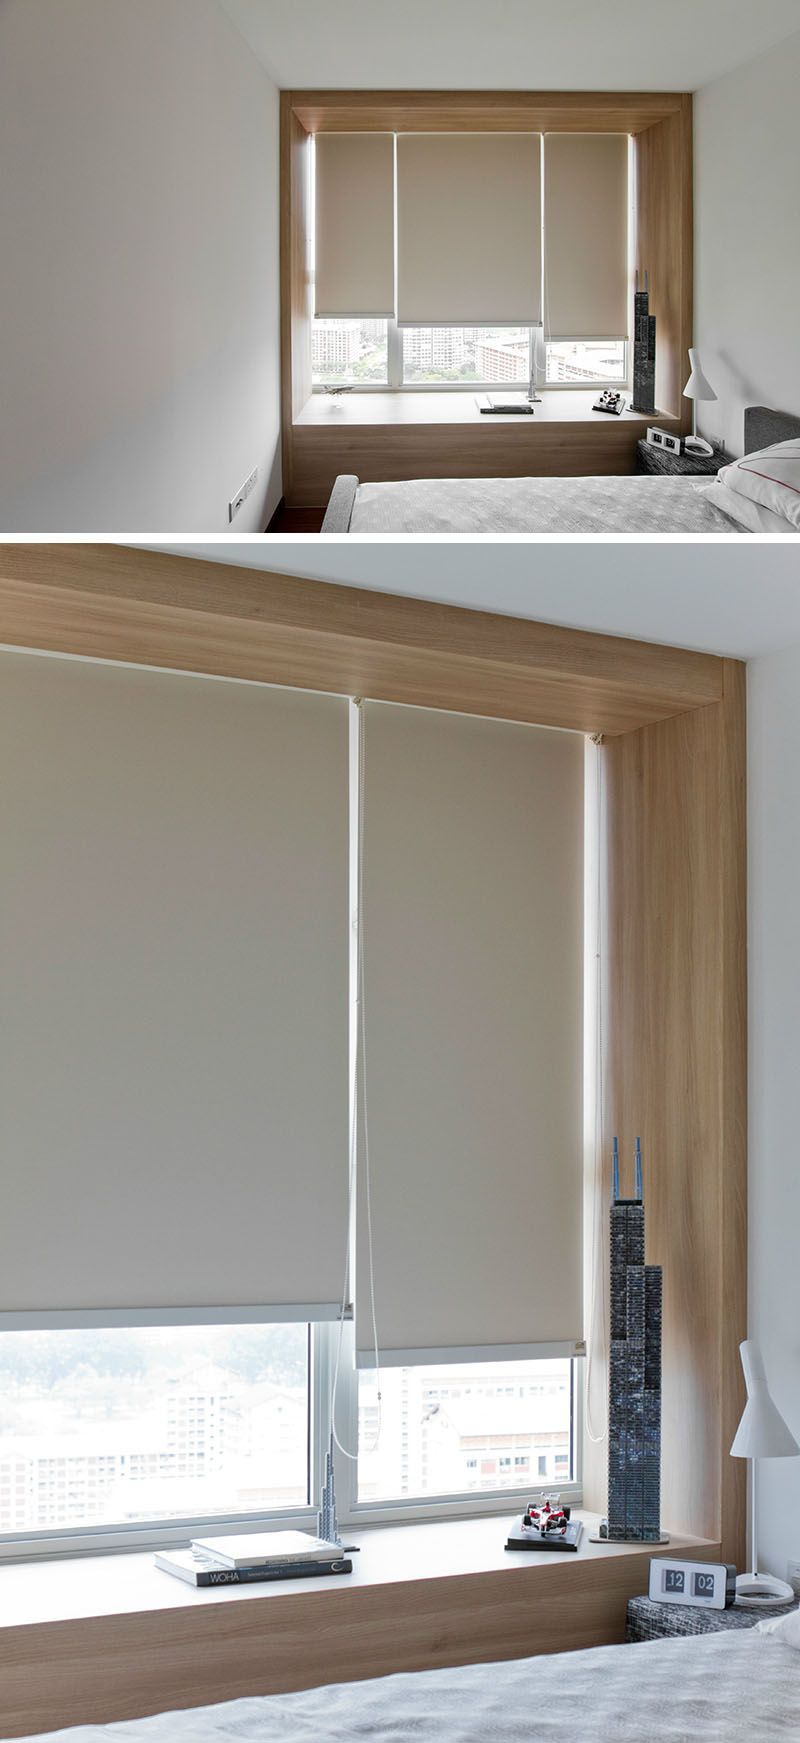 Window blinds ideas   contemporary ideas for window coverings  window coverings window